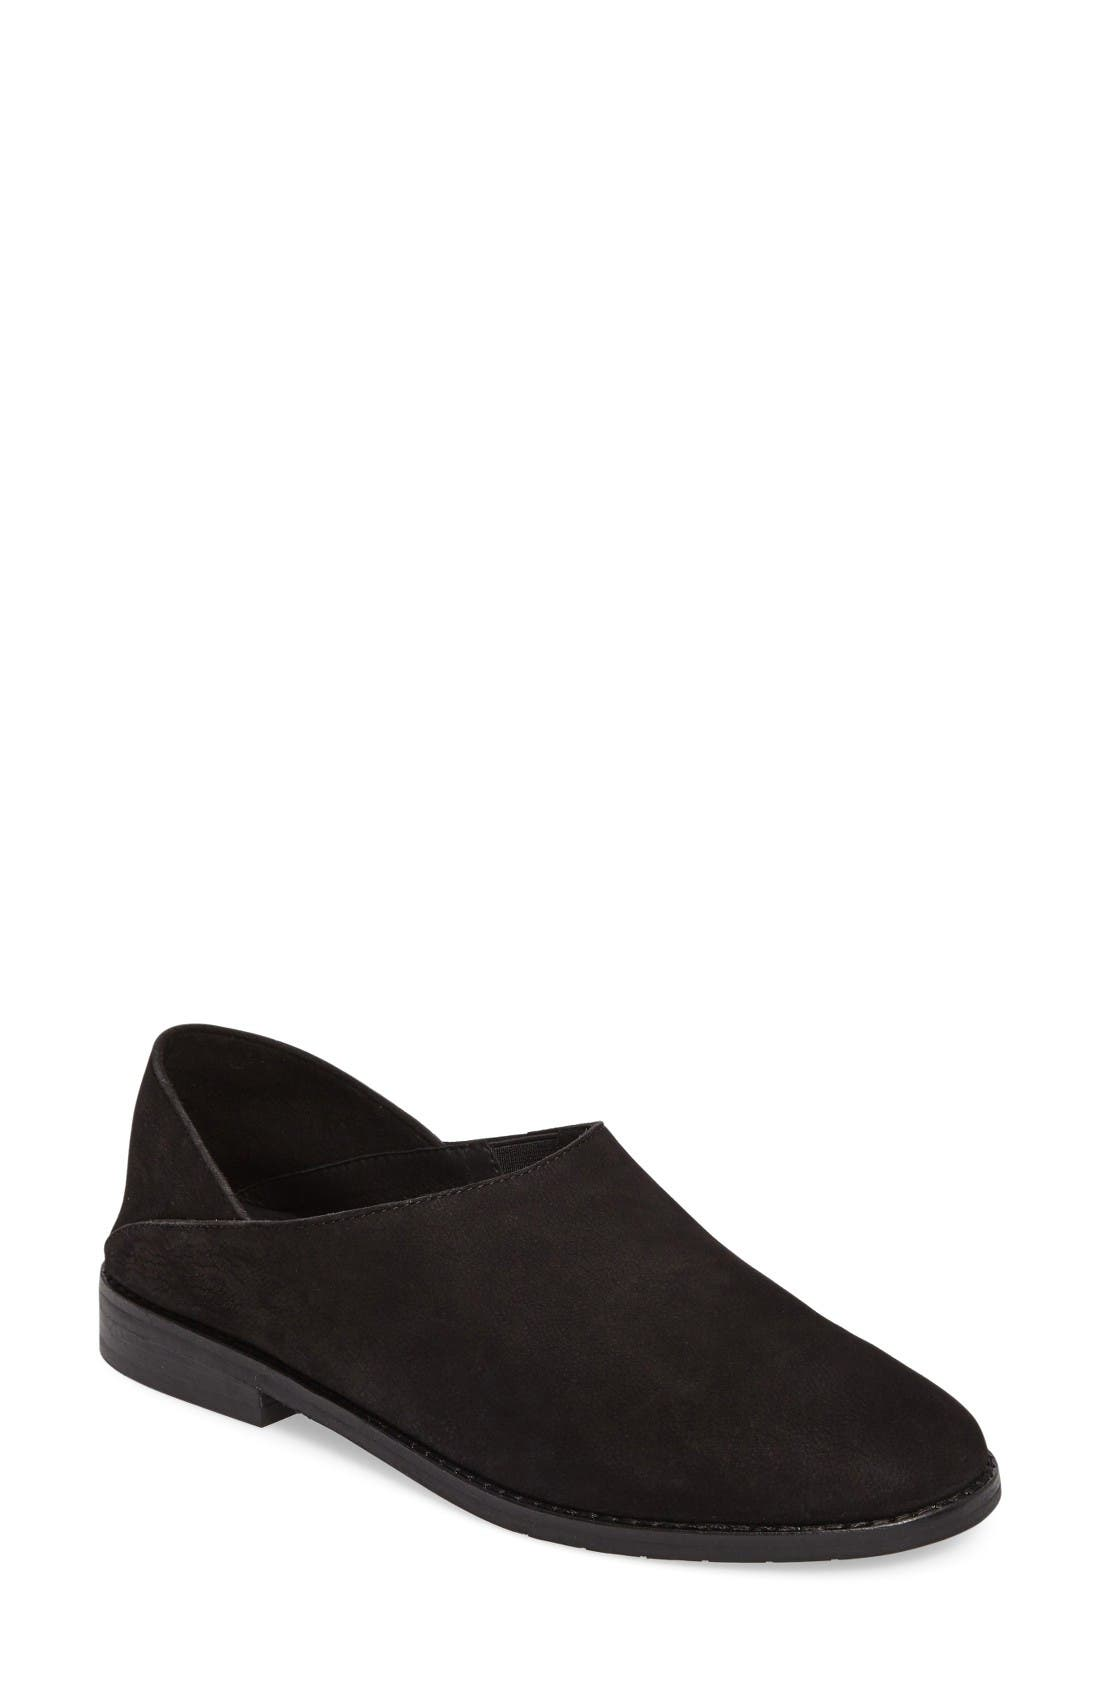 Alternate Image 1 Selected - Eileen Fisher Depan Slip-On (Women)